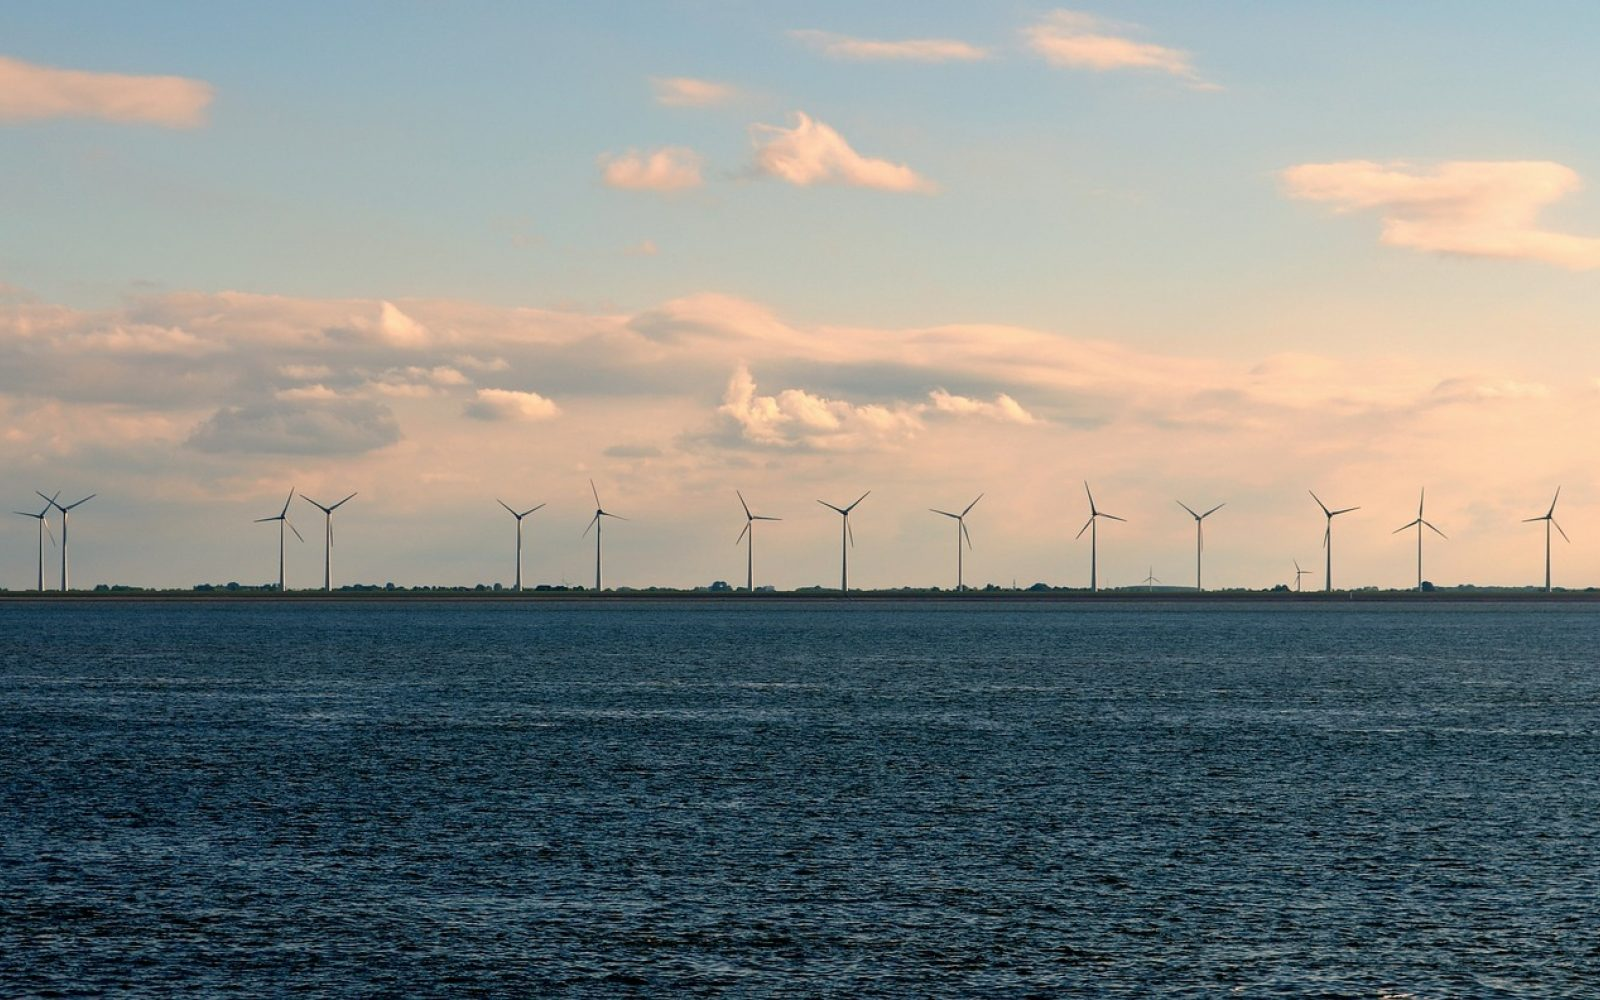 The UK must aim for at least 50% renewable generation by 2050.